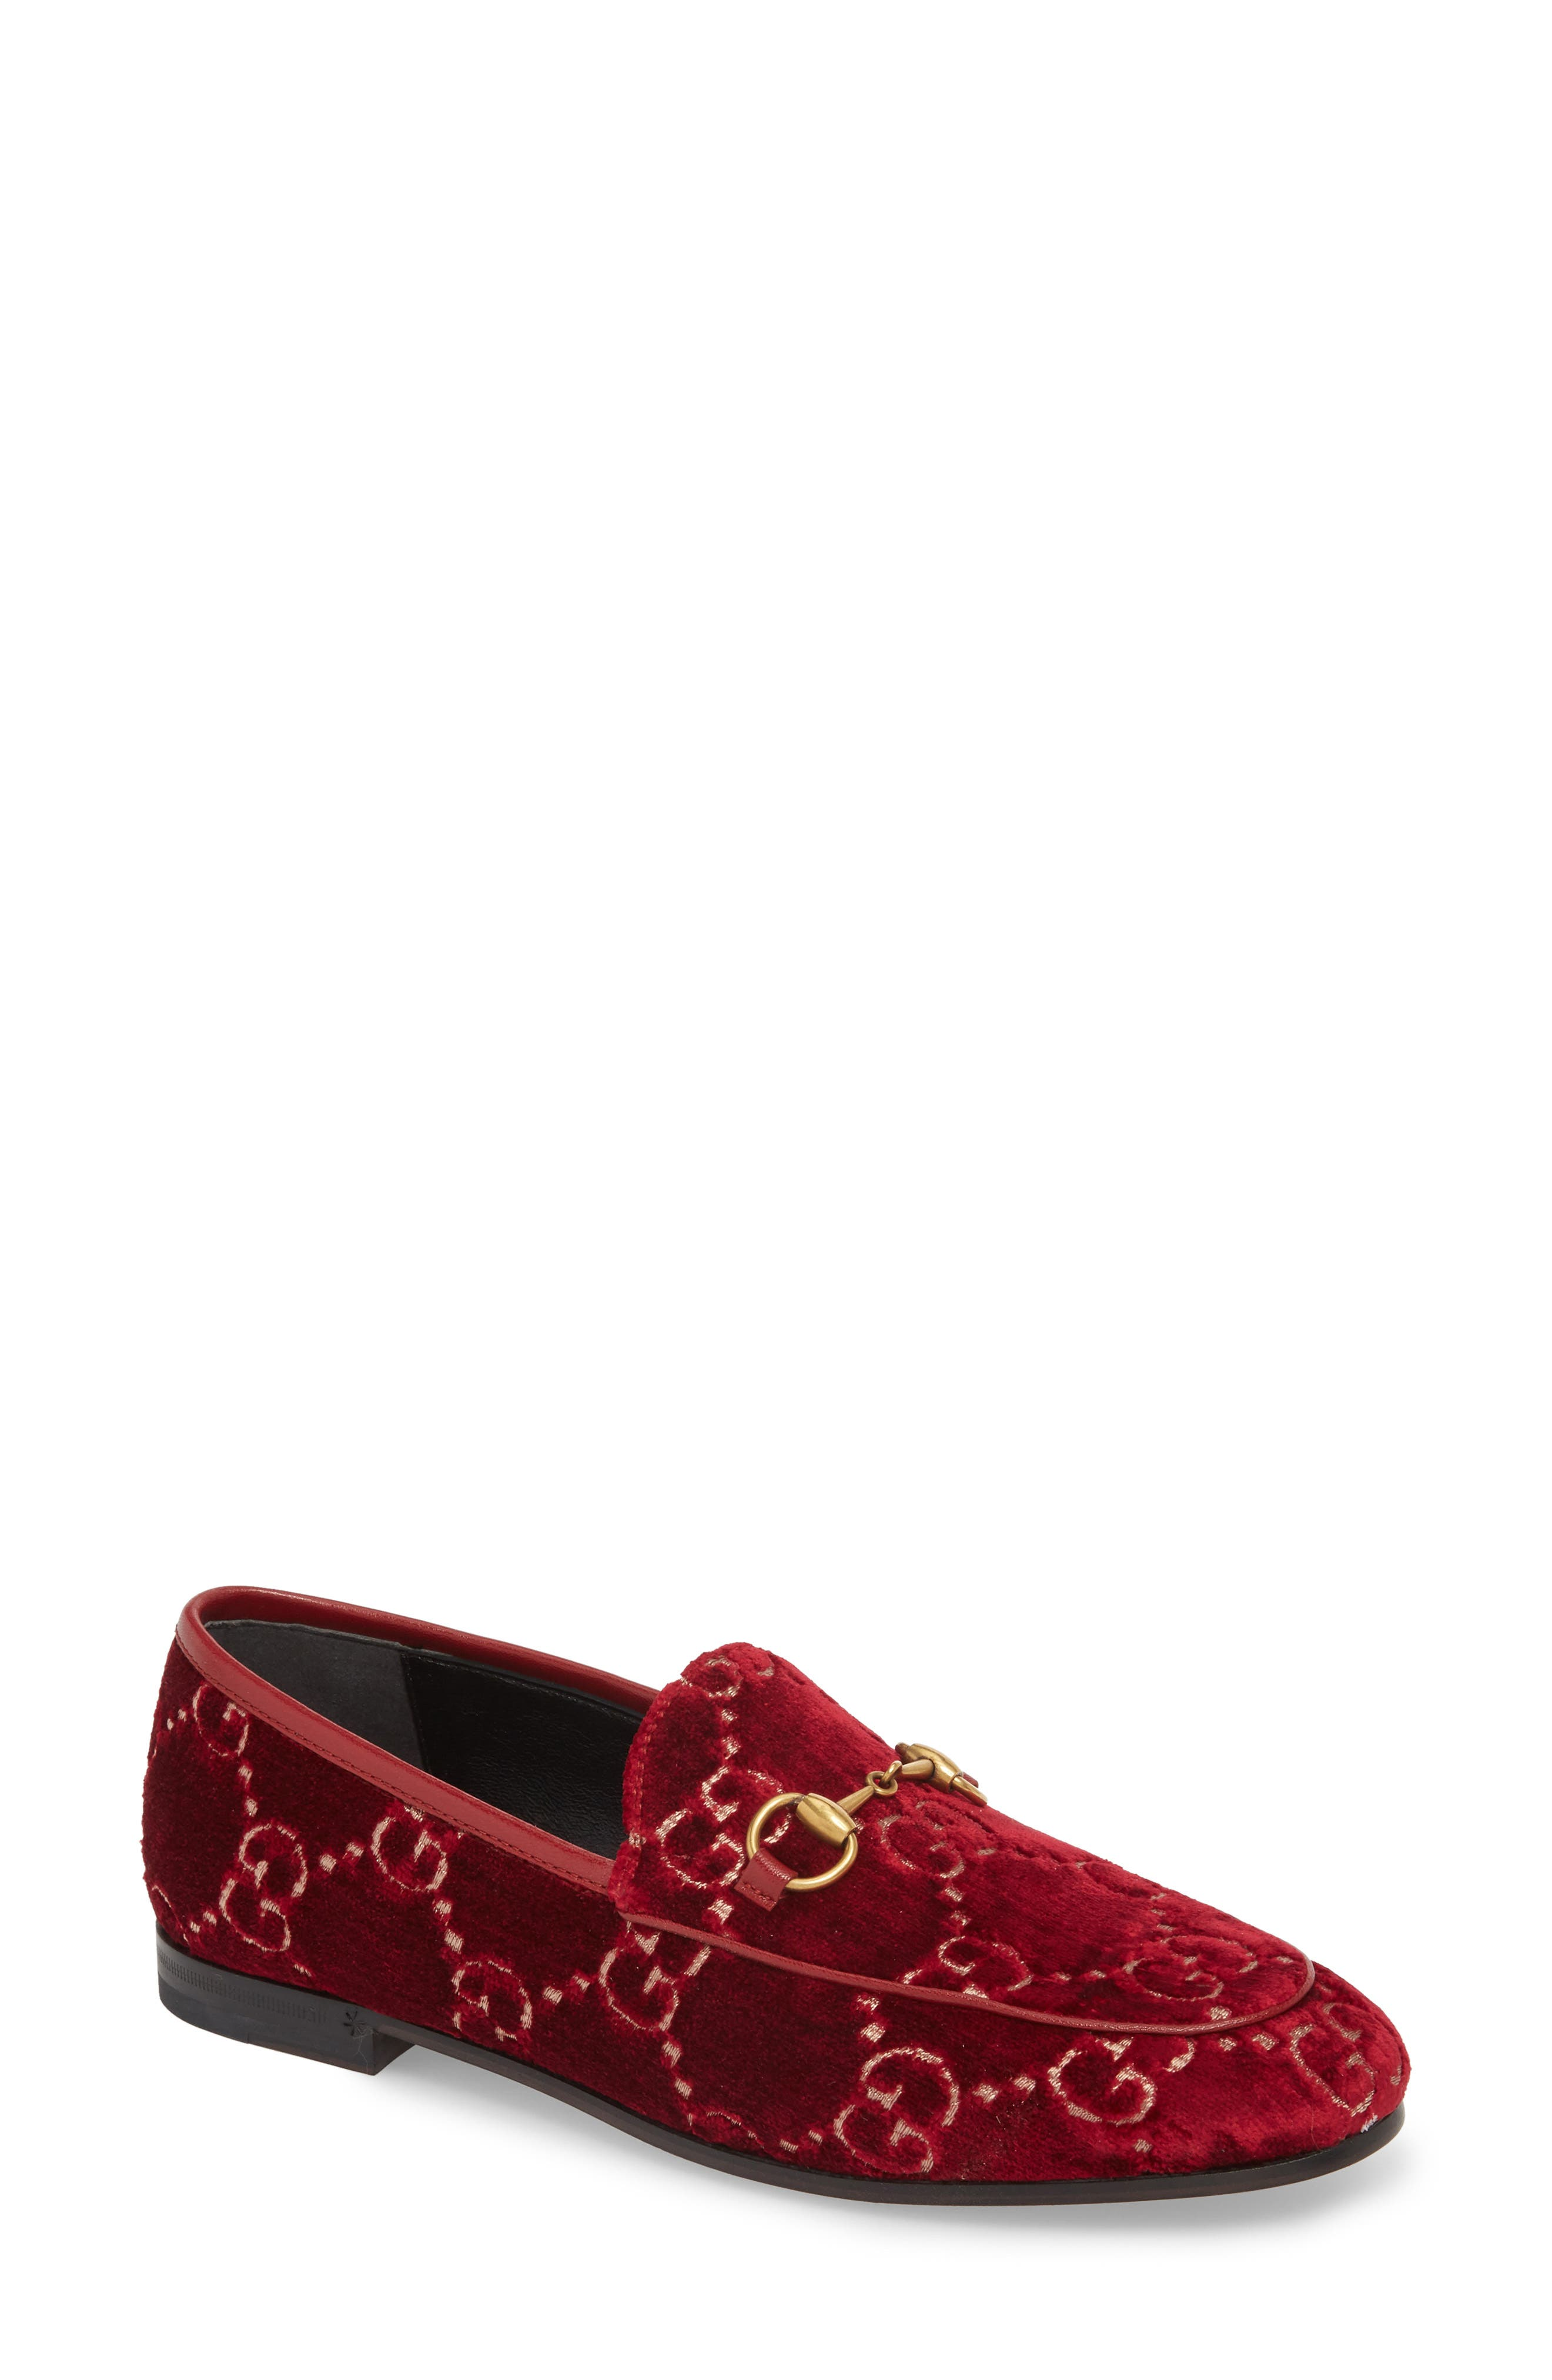 Jordaan Loafer,                         Main,                         color, Red